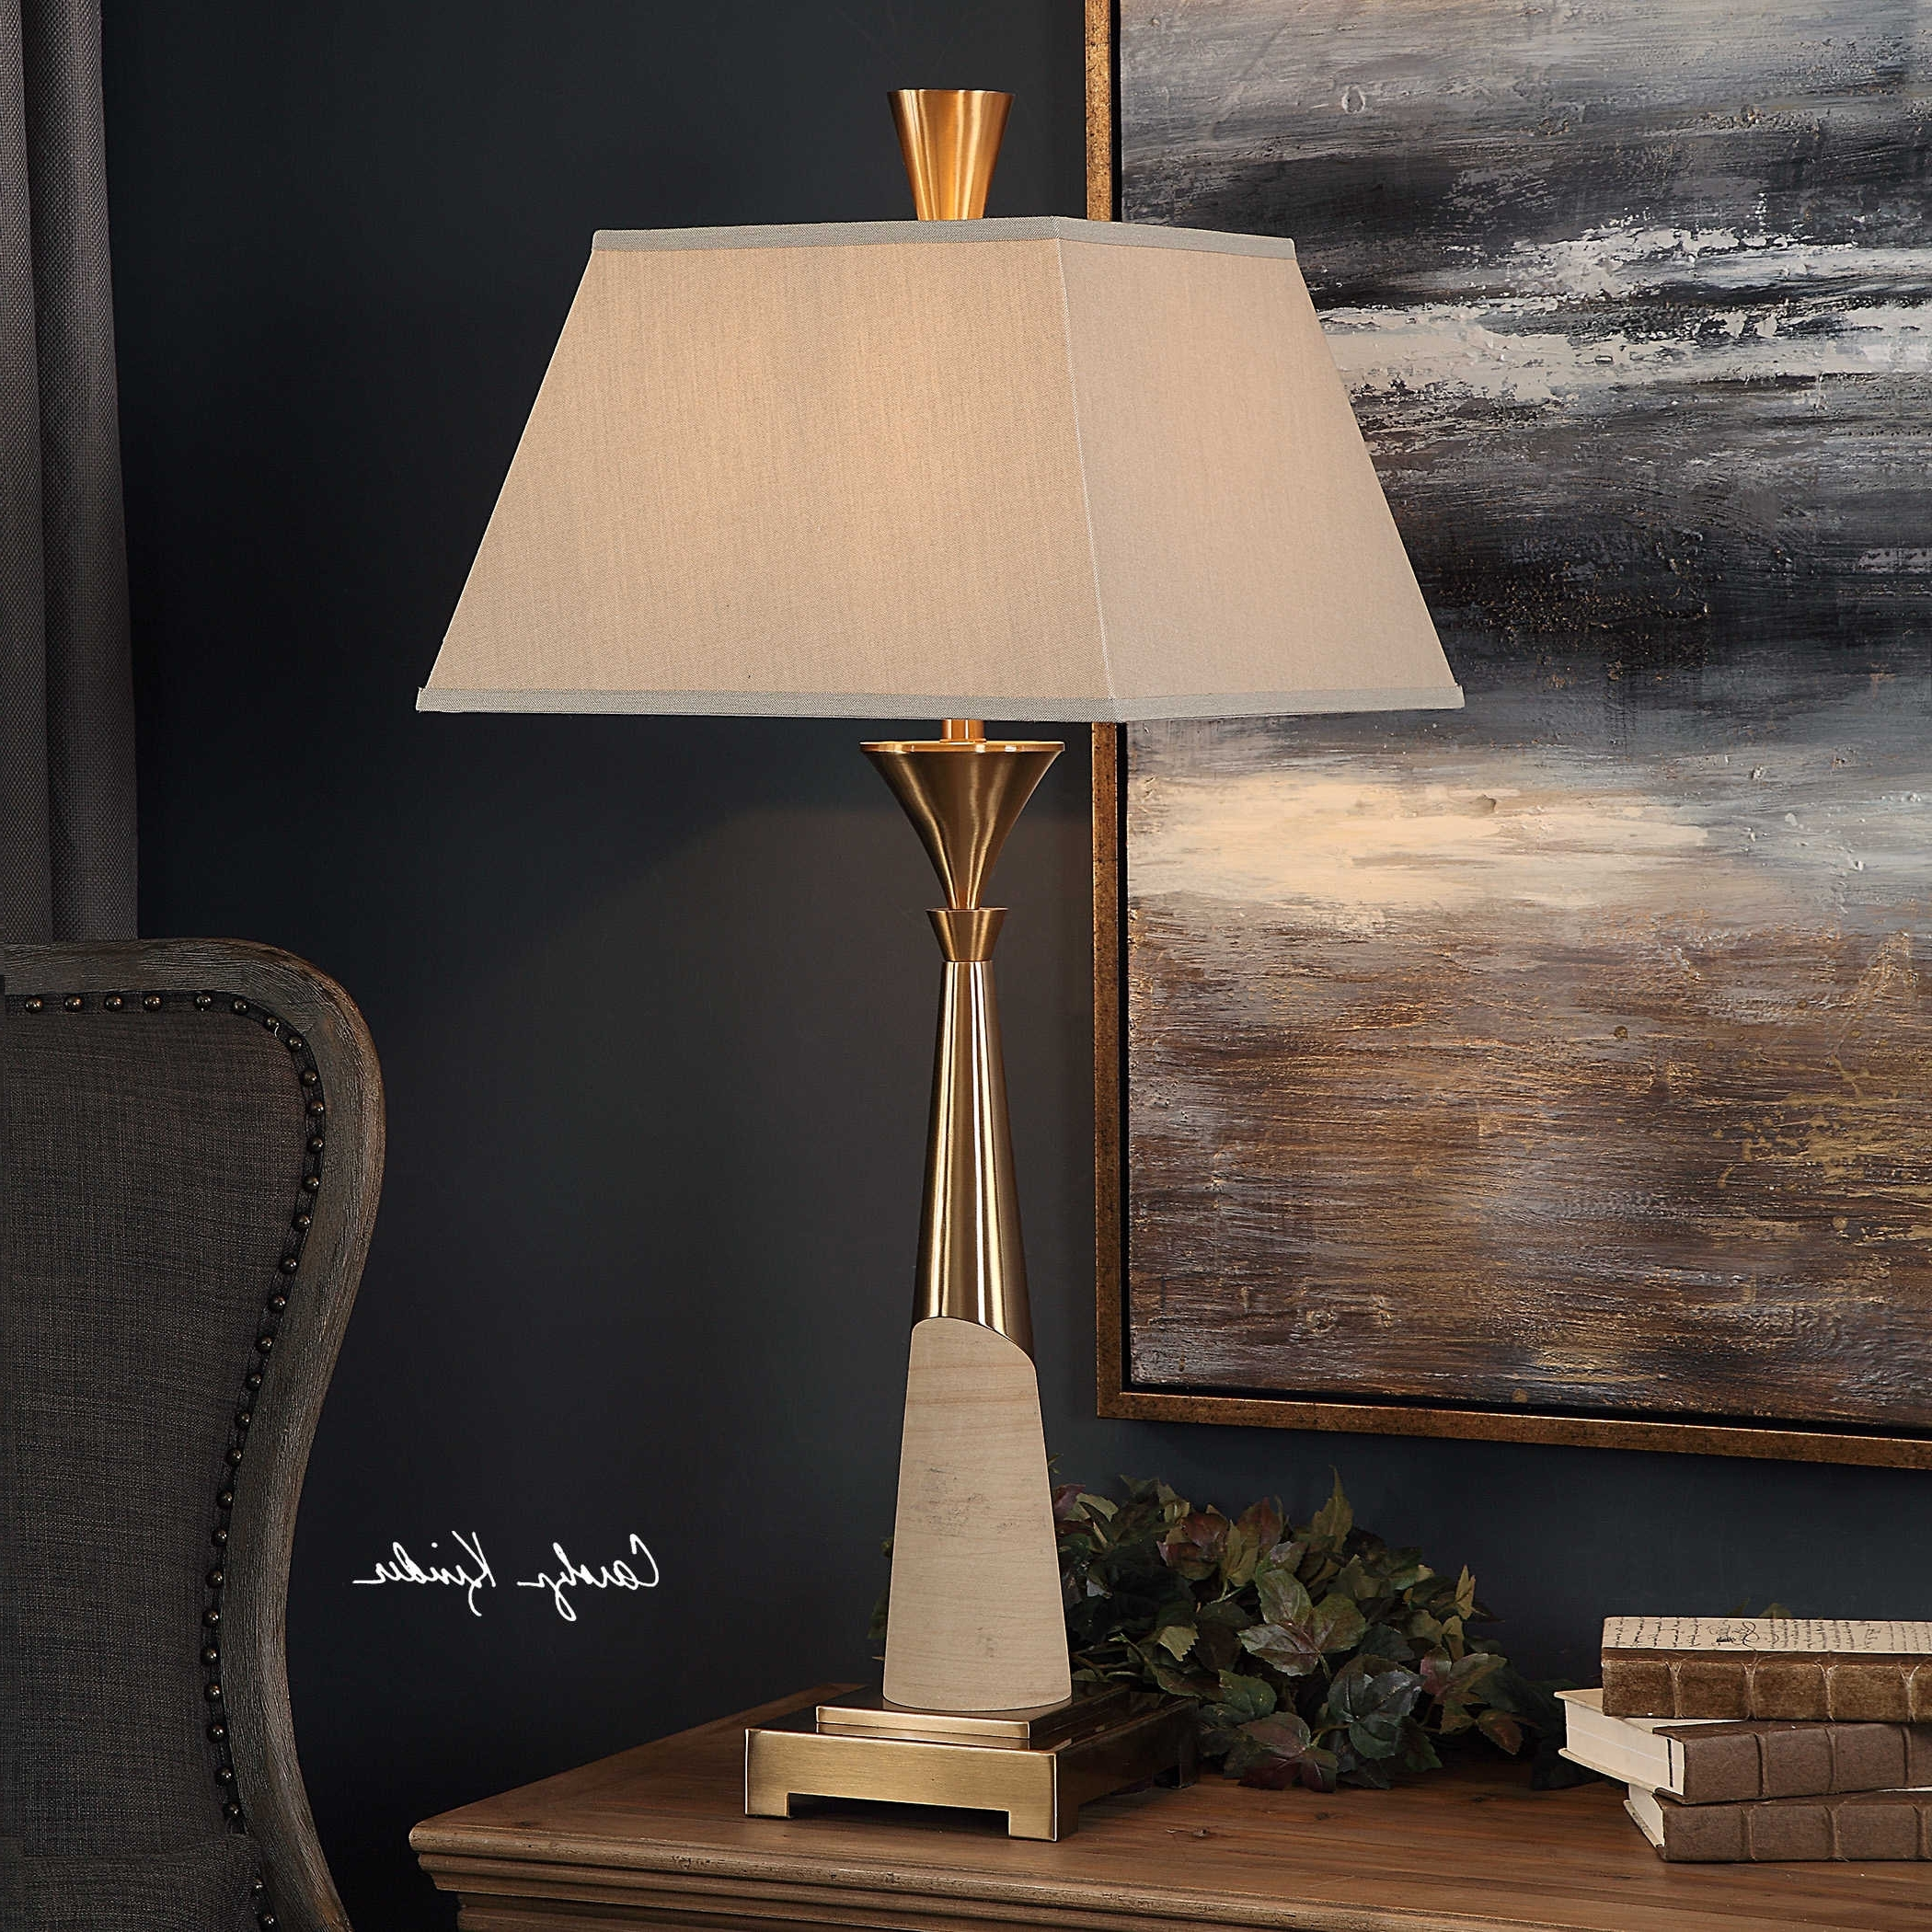 38 New Country Style Table Lamps Living Room (View 1 of 15)